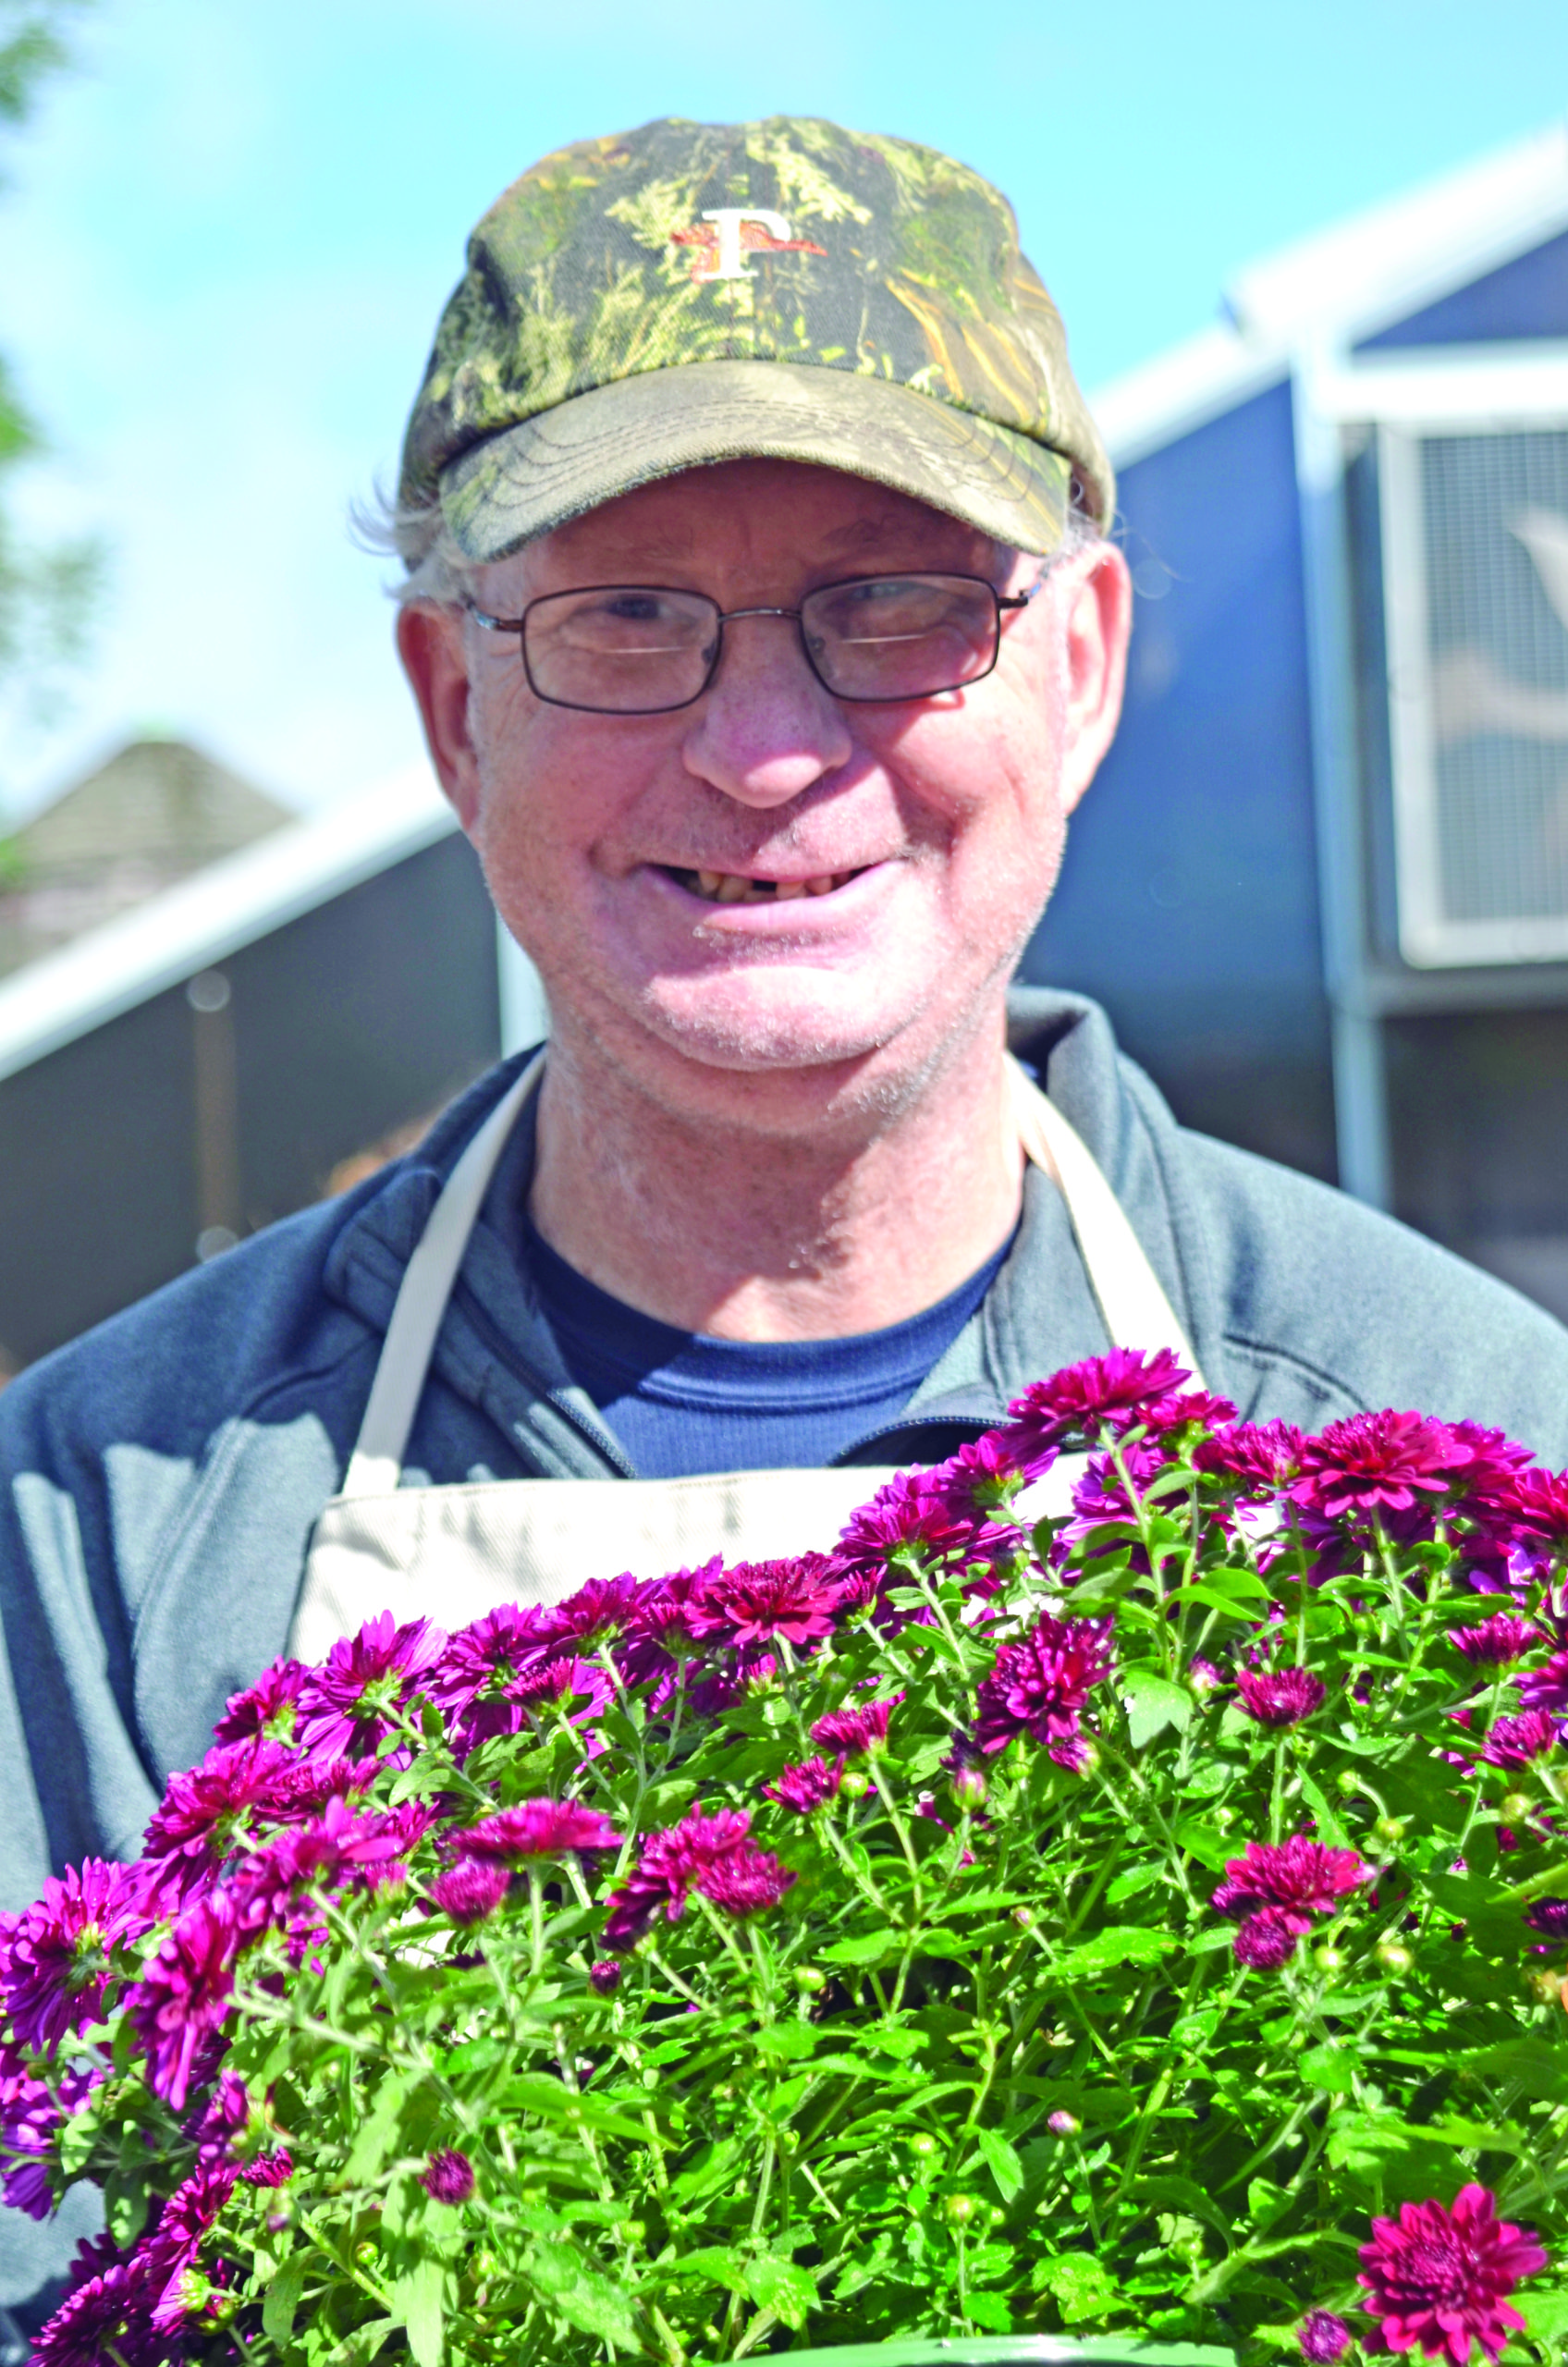 An employee at Smile Farms in Moriches. KIM COVELL